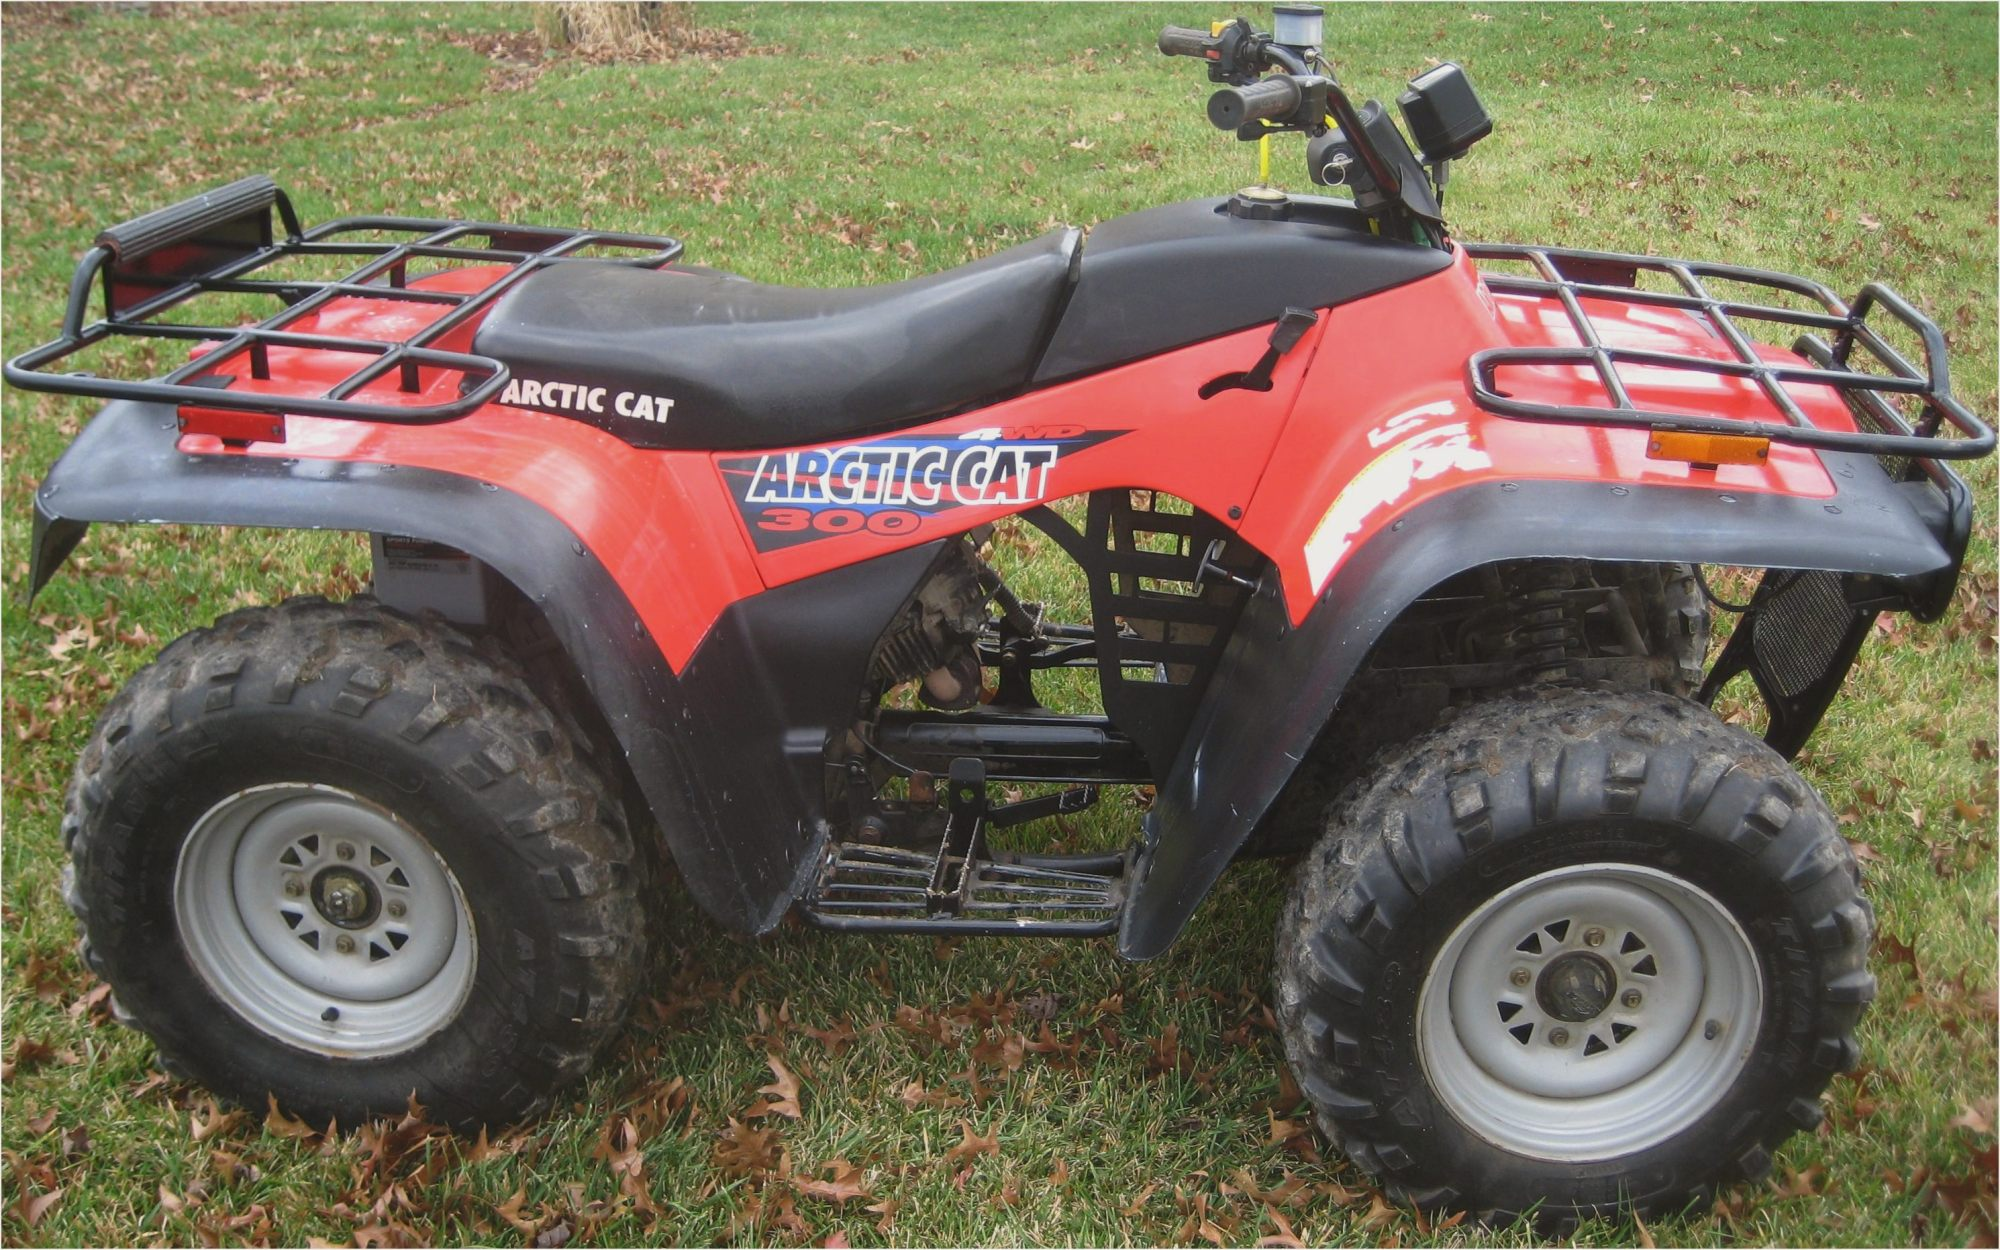 hight resolution of 2003 arctic cat 375 pics specs and information 2001 arctic cat 400 4x4 wiring diagram arctic